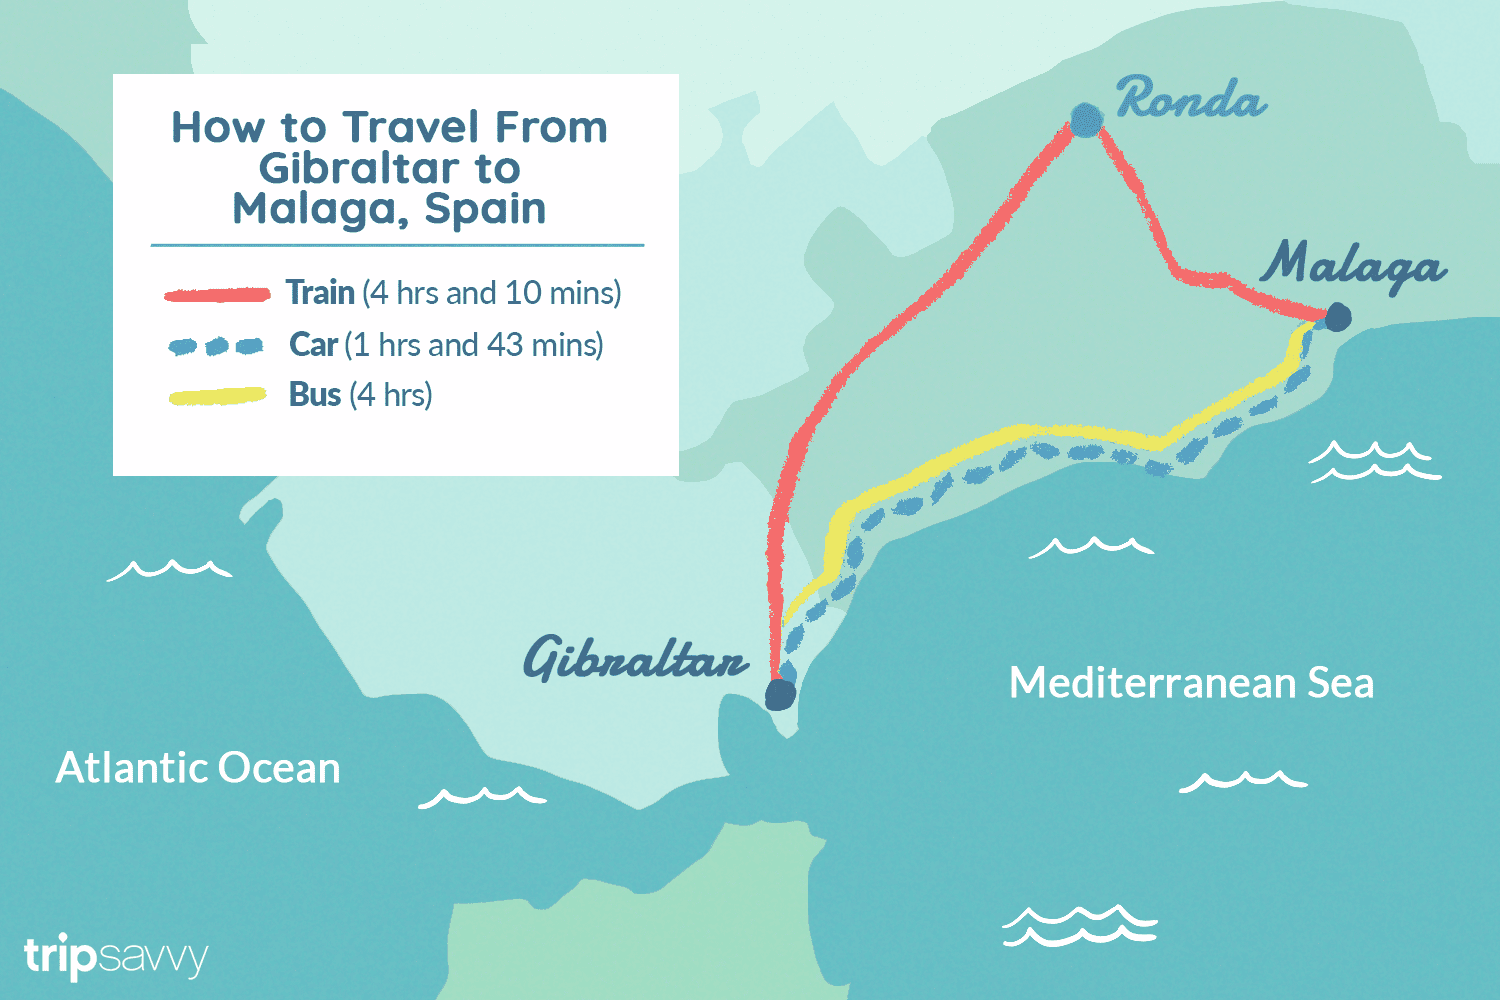 Map Of Spain Showing Malaga.How To Travel From Gibraltar To Malaga